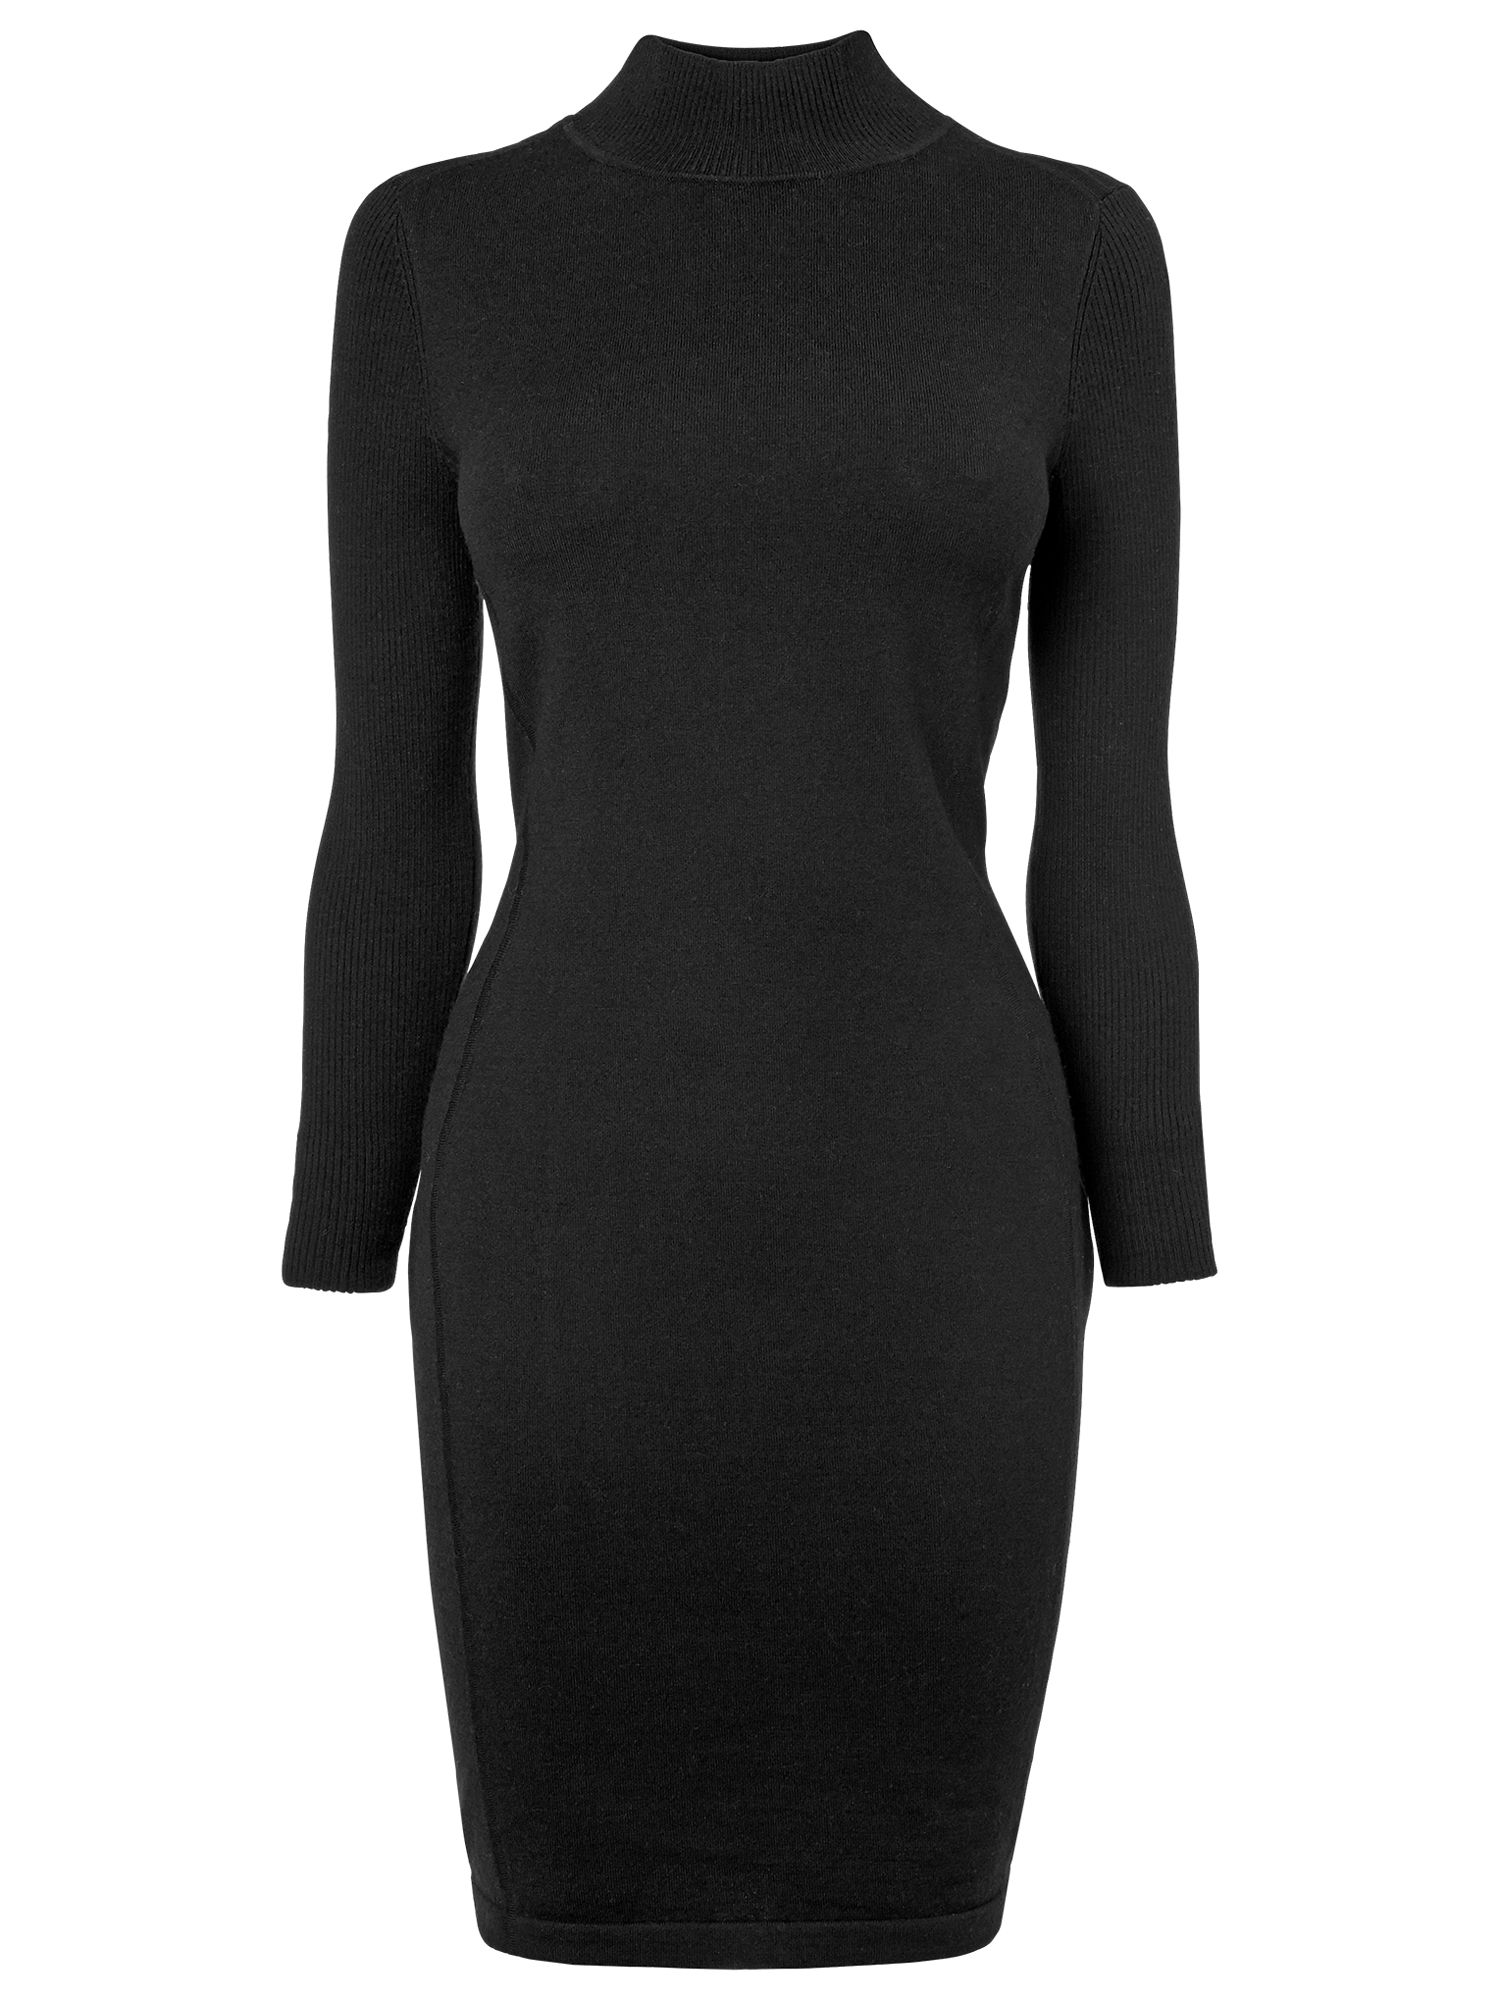 phase eight rita roll neck dress black, phase, eight, rita, roll, neck, dress, black, phase eight, clearance, womenswear offers, womens dresses offers, women, inactive womenswear, new reductions, womens dresses, special offers, fashion magazine, brands l-z, 1694763